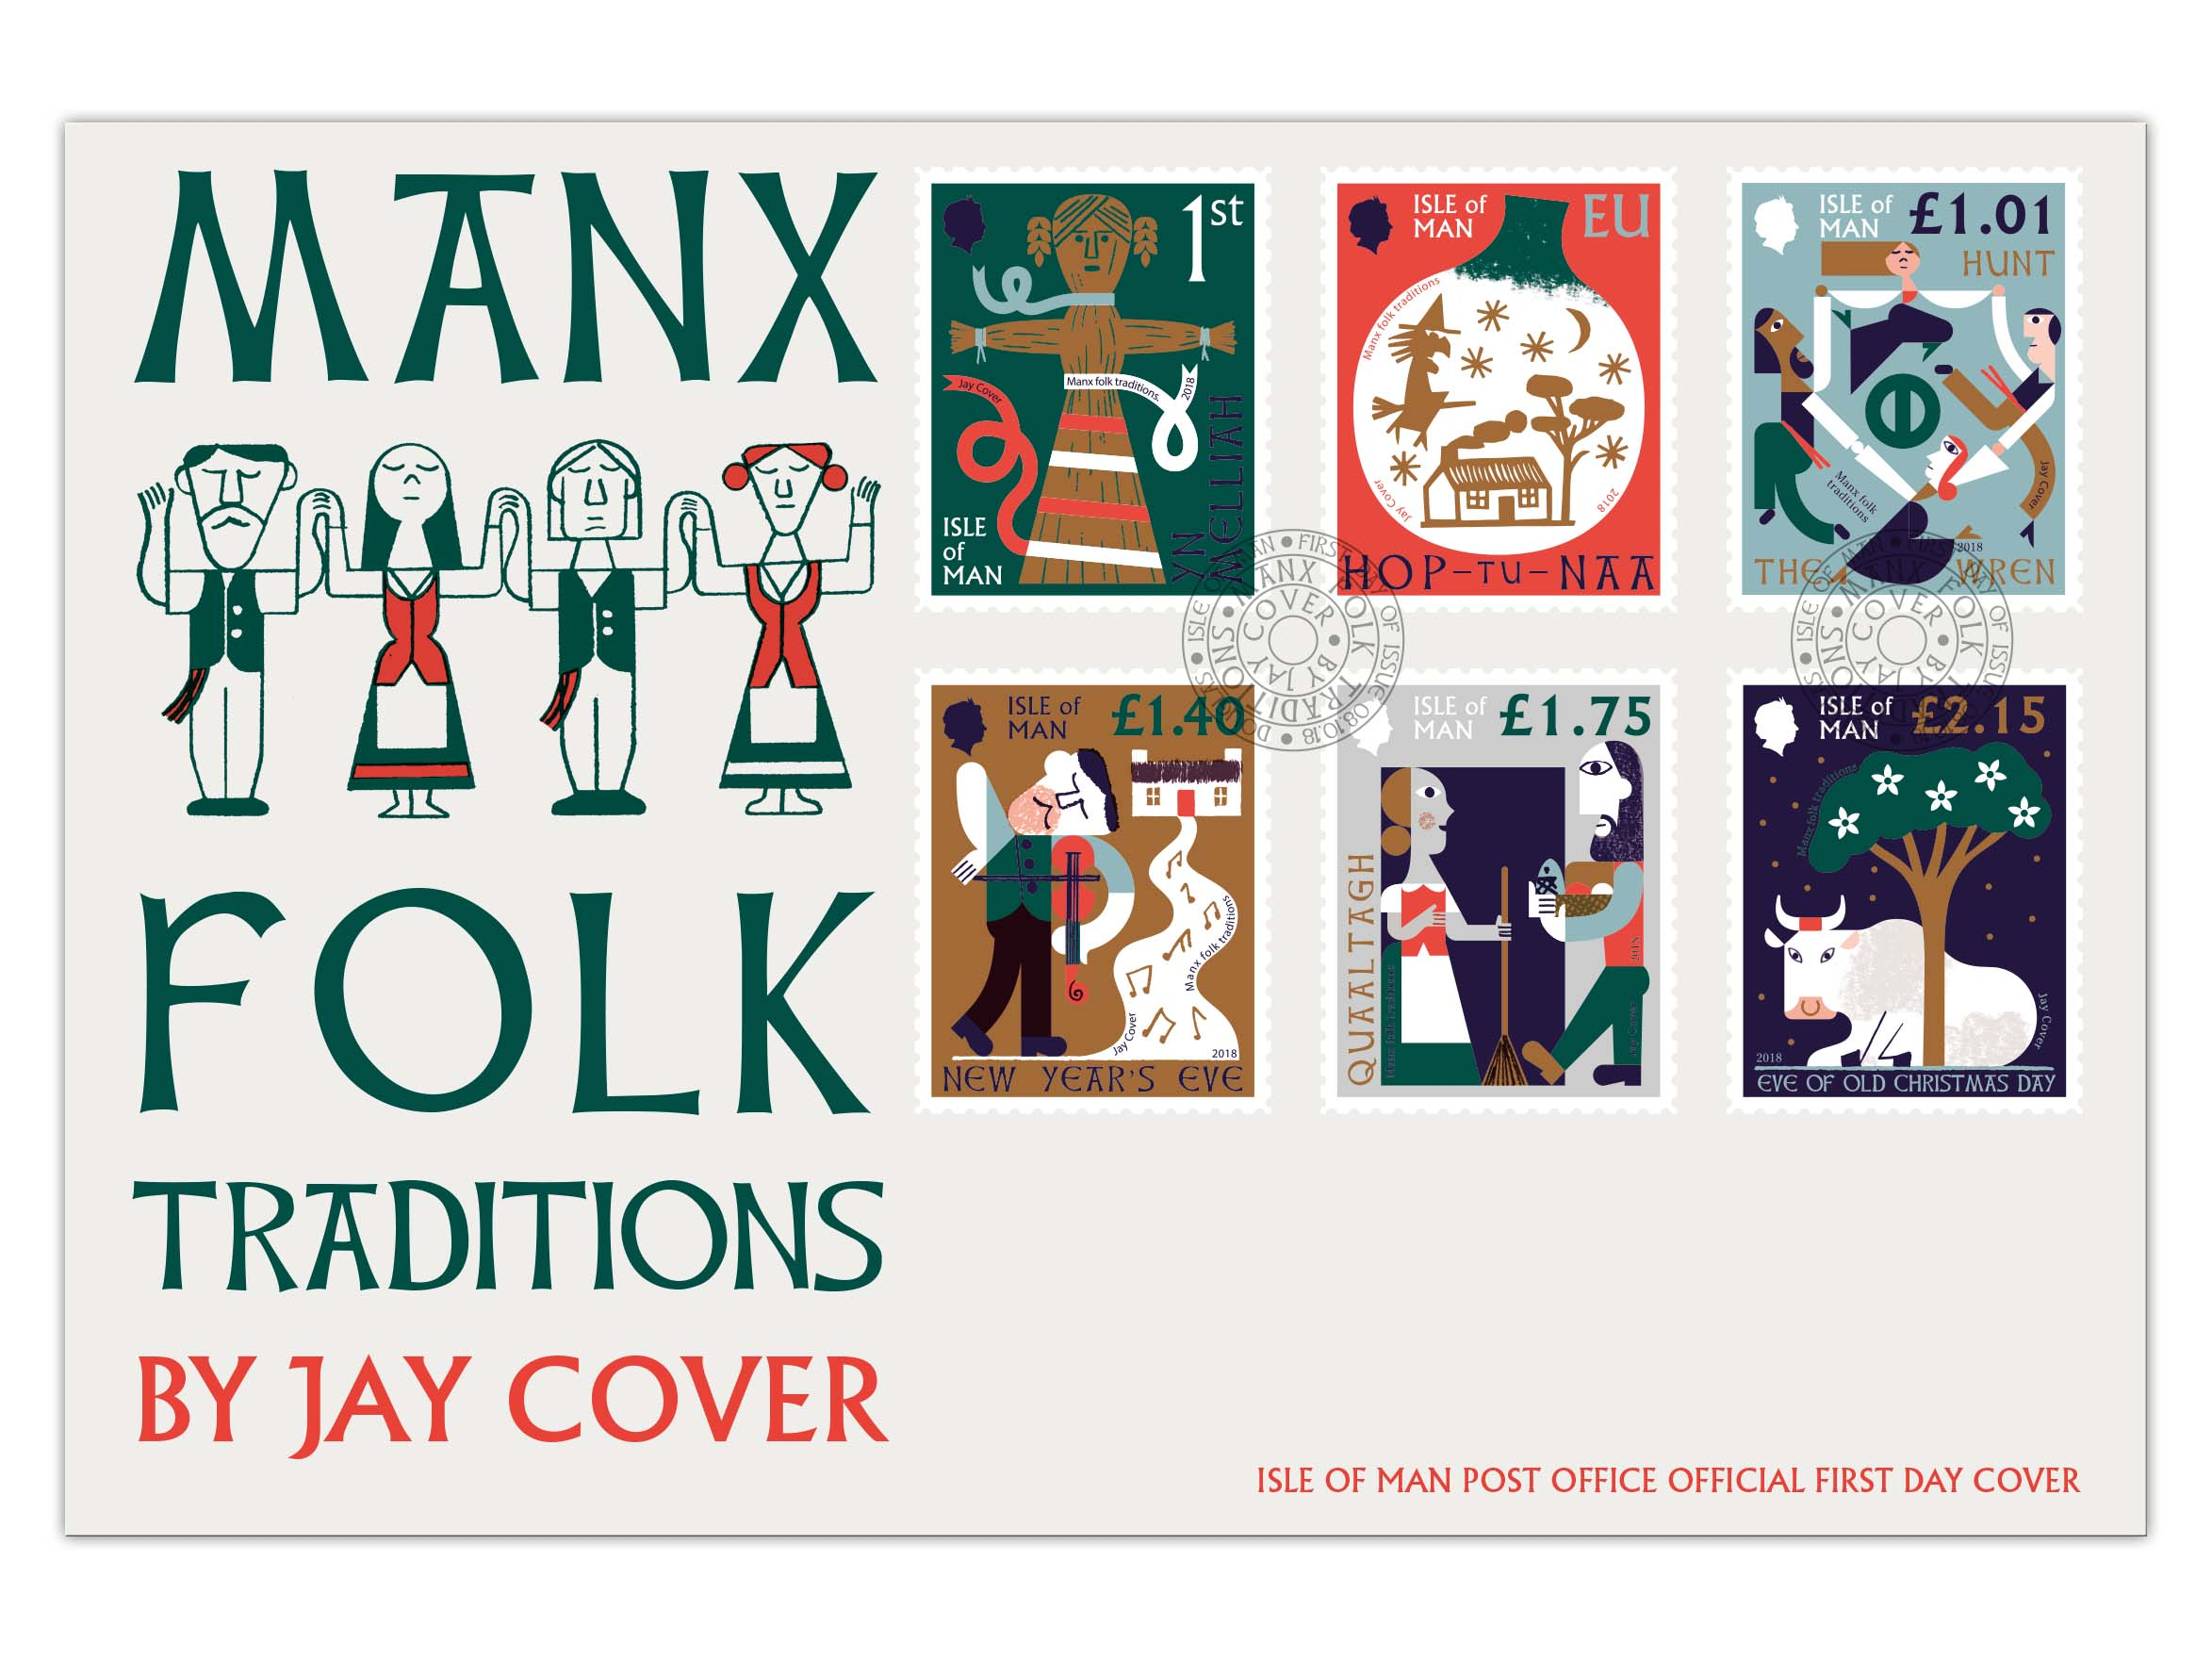 MANX FOLK TRADITIONS RECREATED IN ISLE OF MAN POST OFFICE STAMPS ...